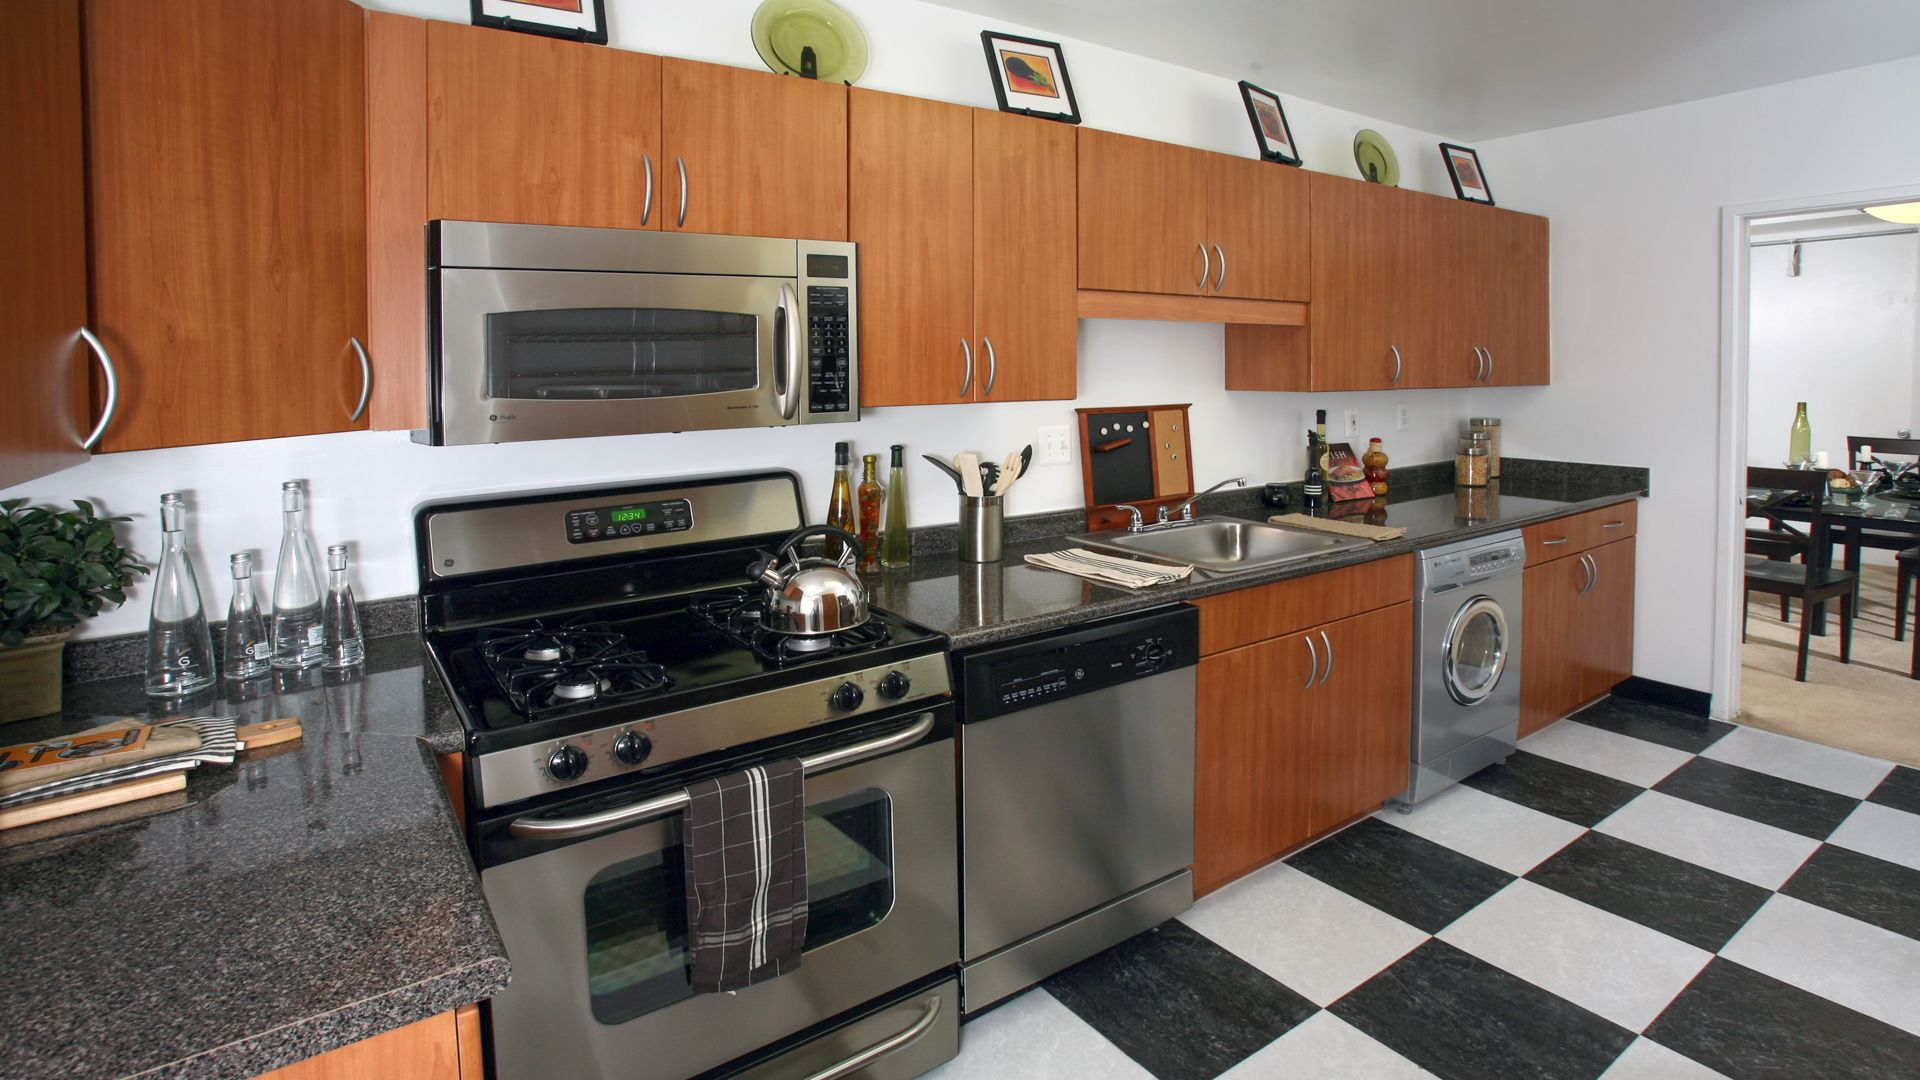 Skyline Towers Apartments - Kitchen